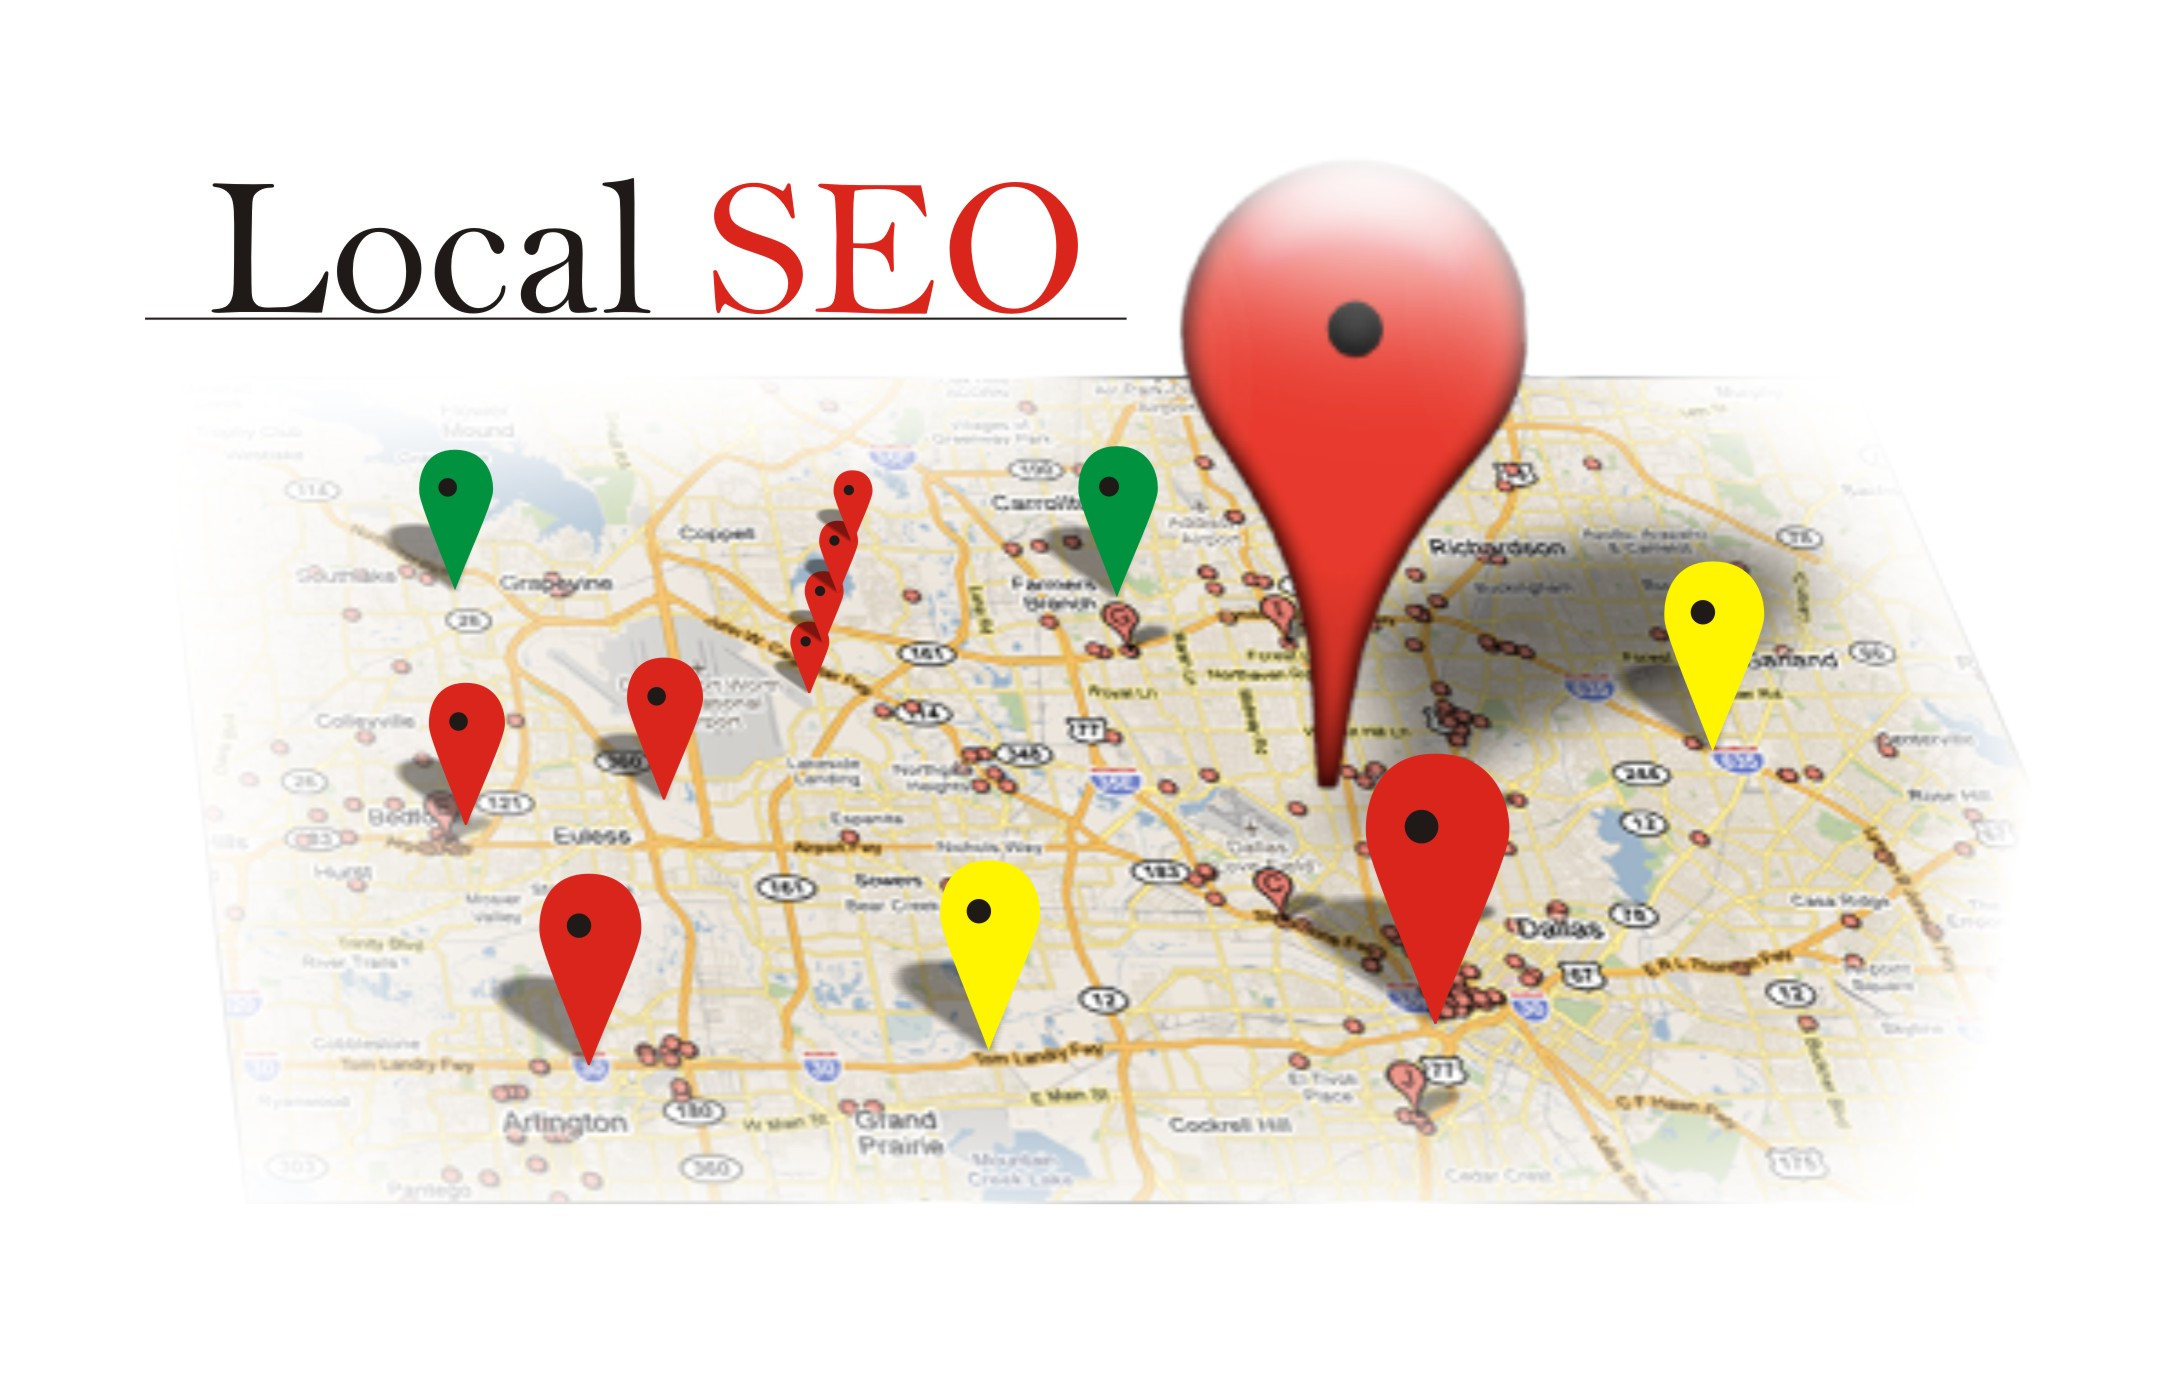 locao seo website 2016